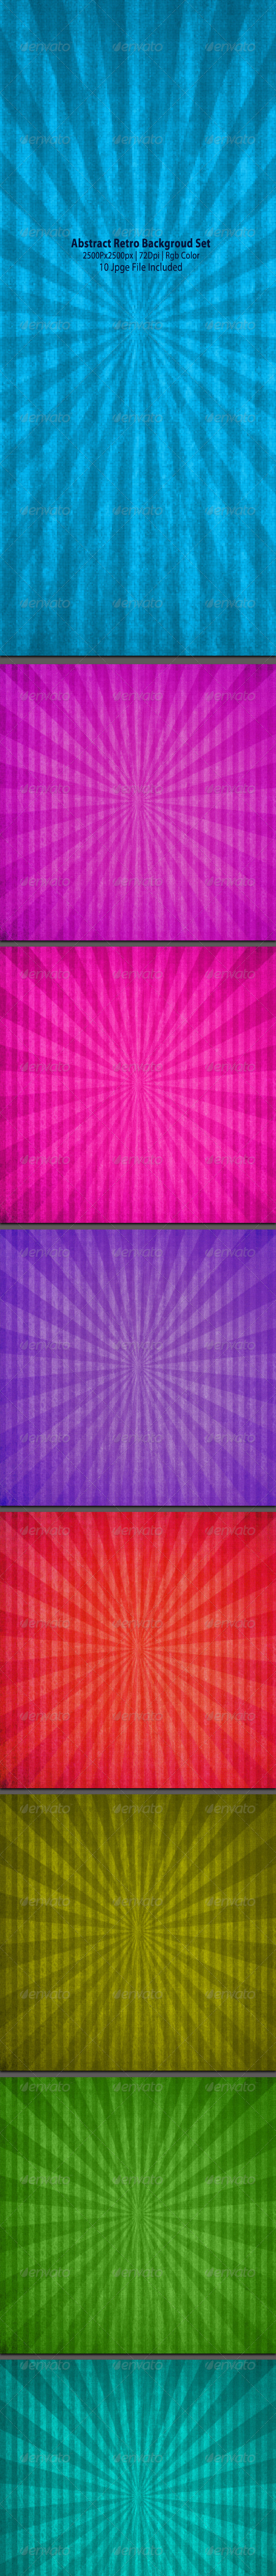 Abstract Retro Background Set - Abstract Backgrounds